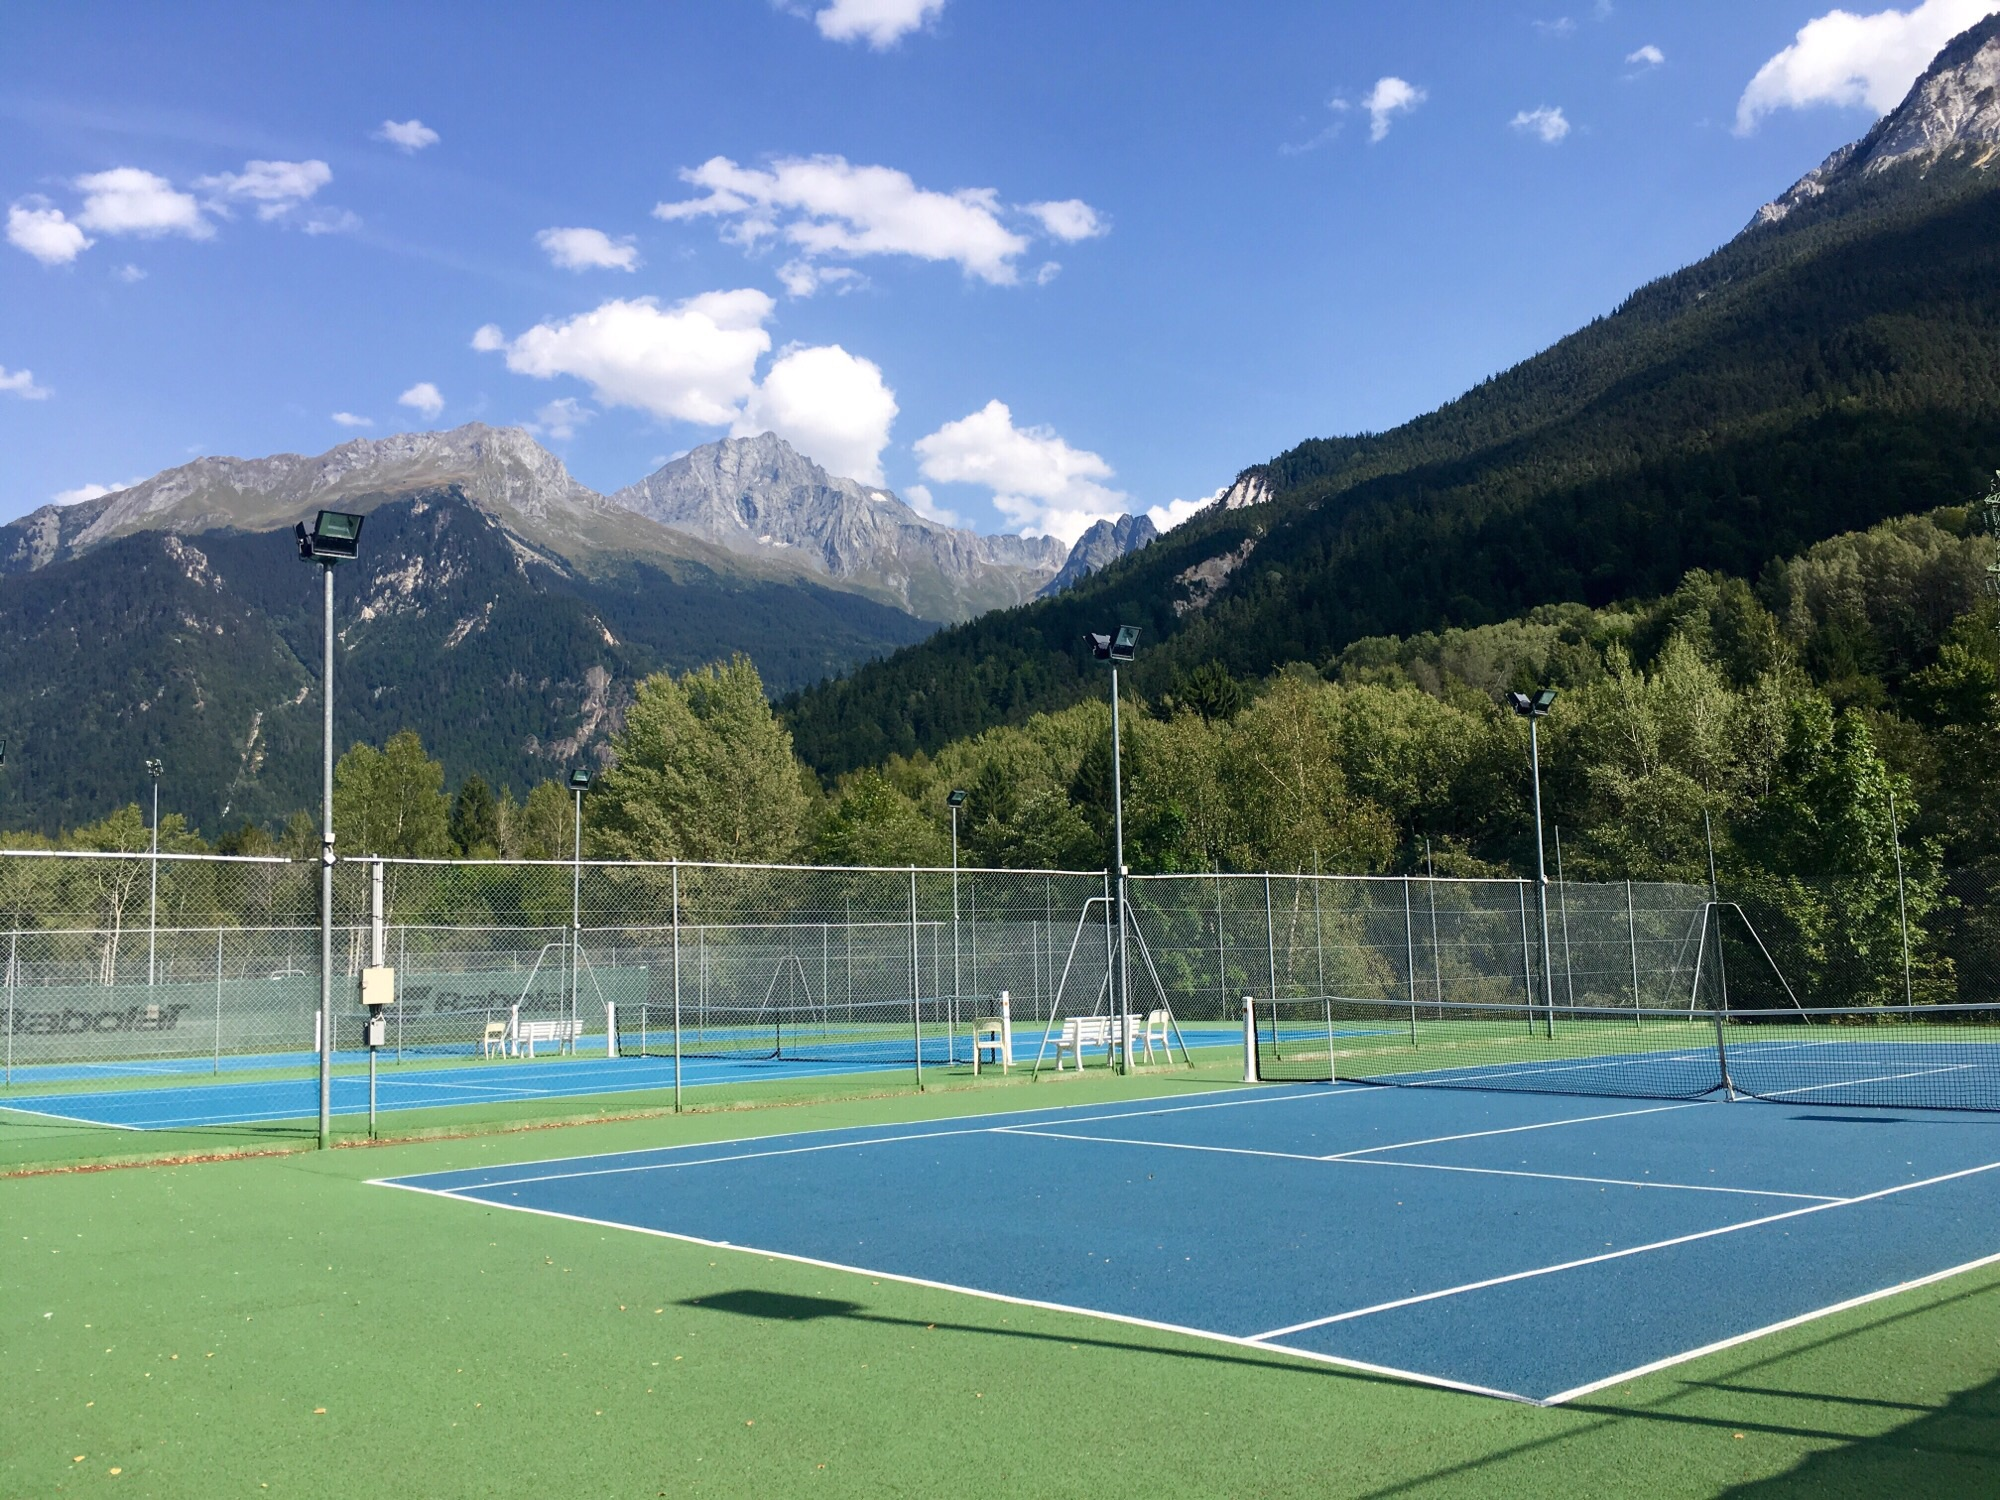 3 tennis courts at Bozel